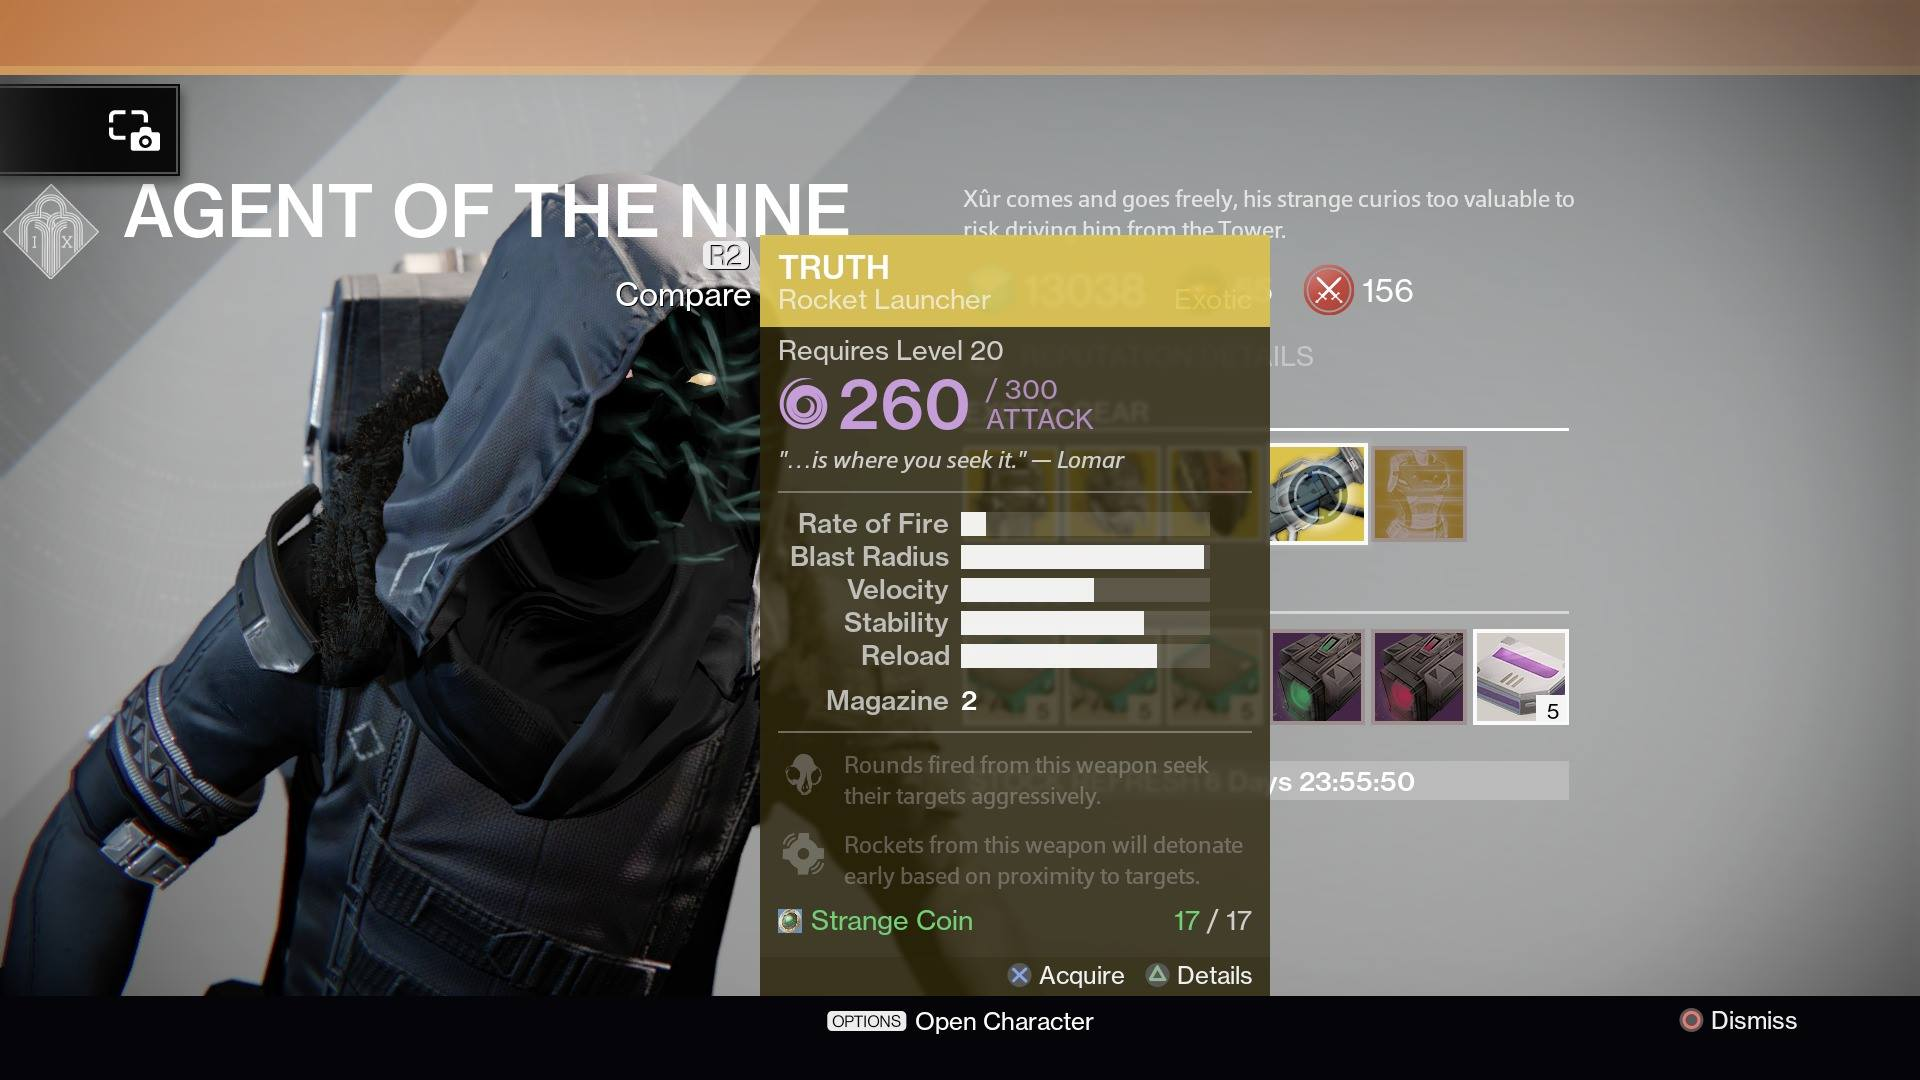 Destiny xur location for october 17 2014 revealed exotic weapon goes